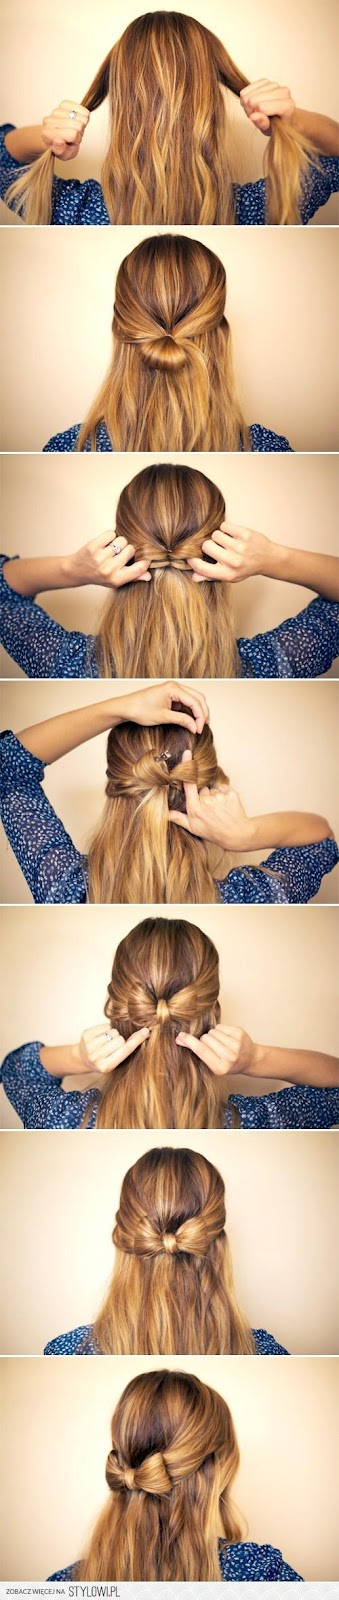 Diy hair bow bun pictures photos and images for facebook tumblr - Secrets In My Heart Szybkie Atwe I Proste Fryzury